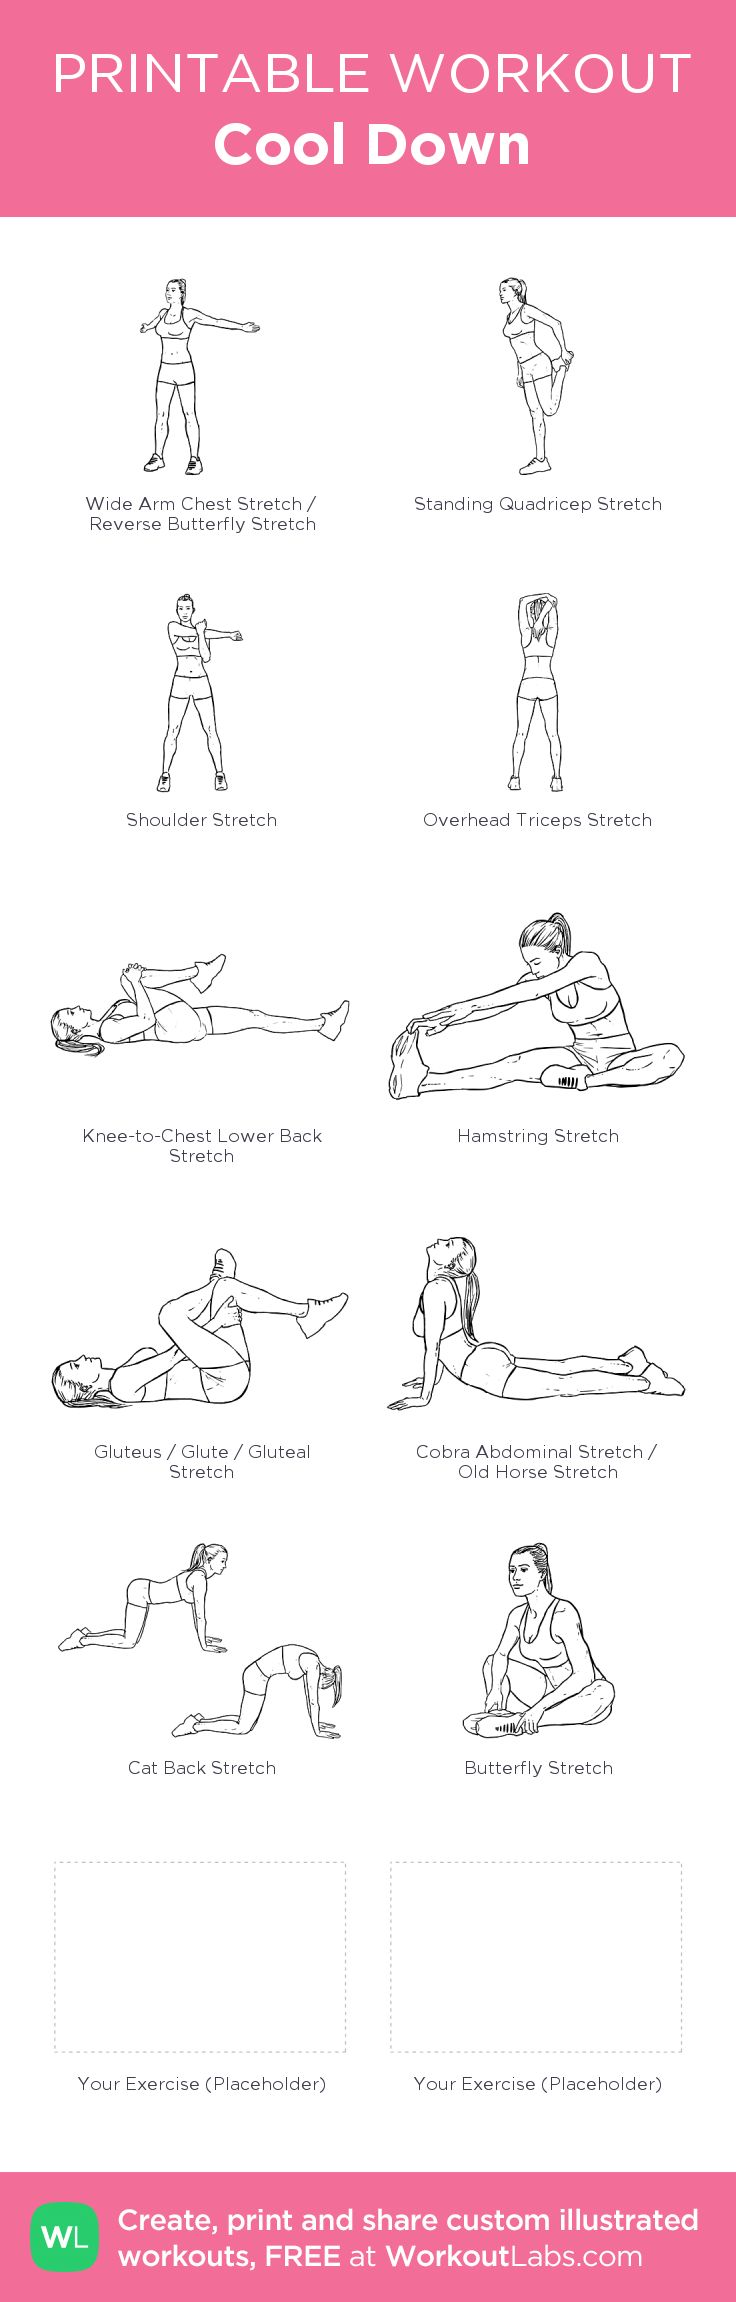 Cool Down: my visual workout created at WorkoutLabs.com • Click through to customize and download as a FREE PDF! #customworkout